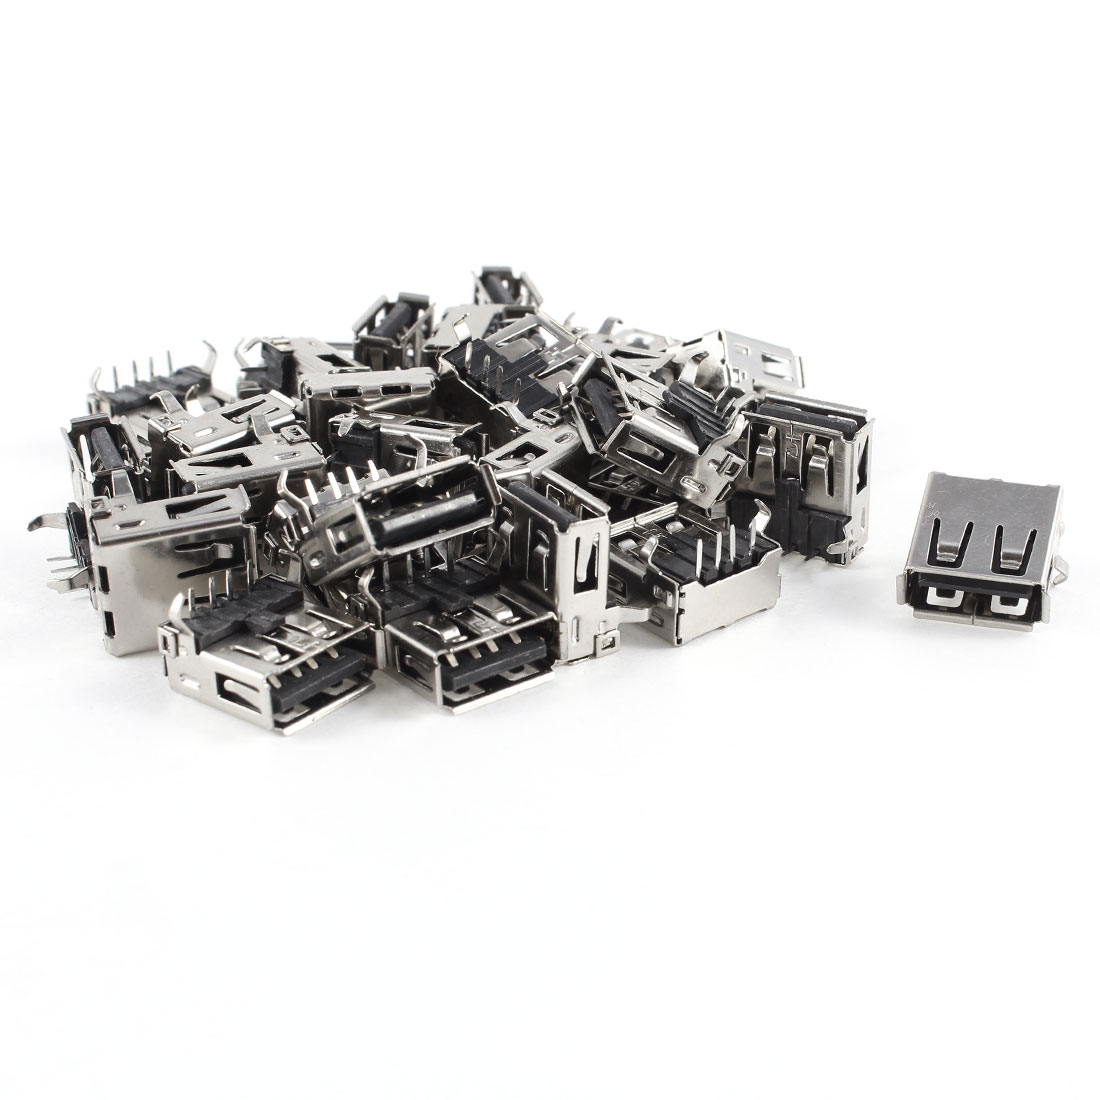 30 Pcs USB 2.0 Female Type A 4-Pin DIP 90 Degree Jack Socket Connector